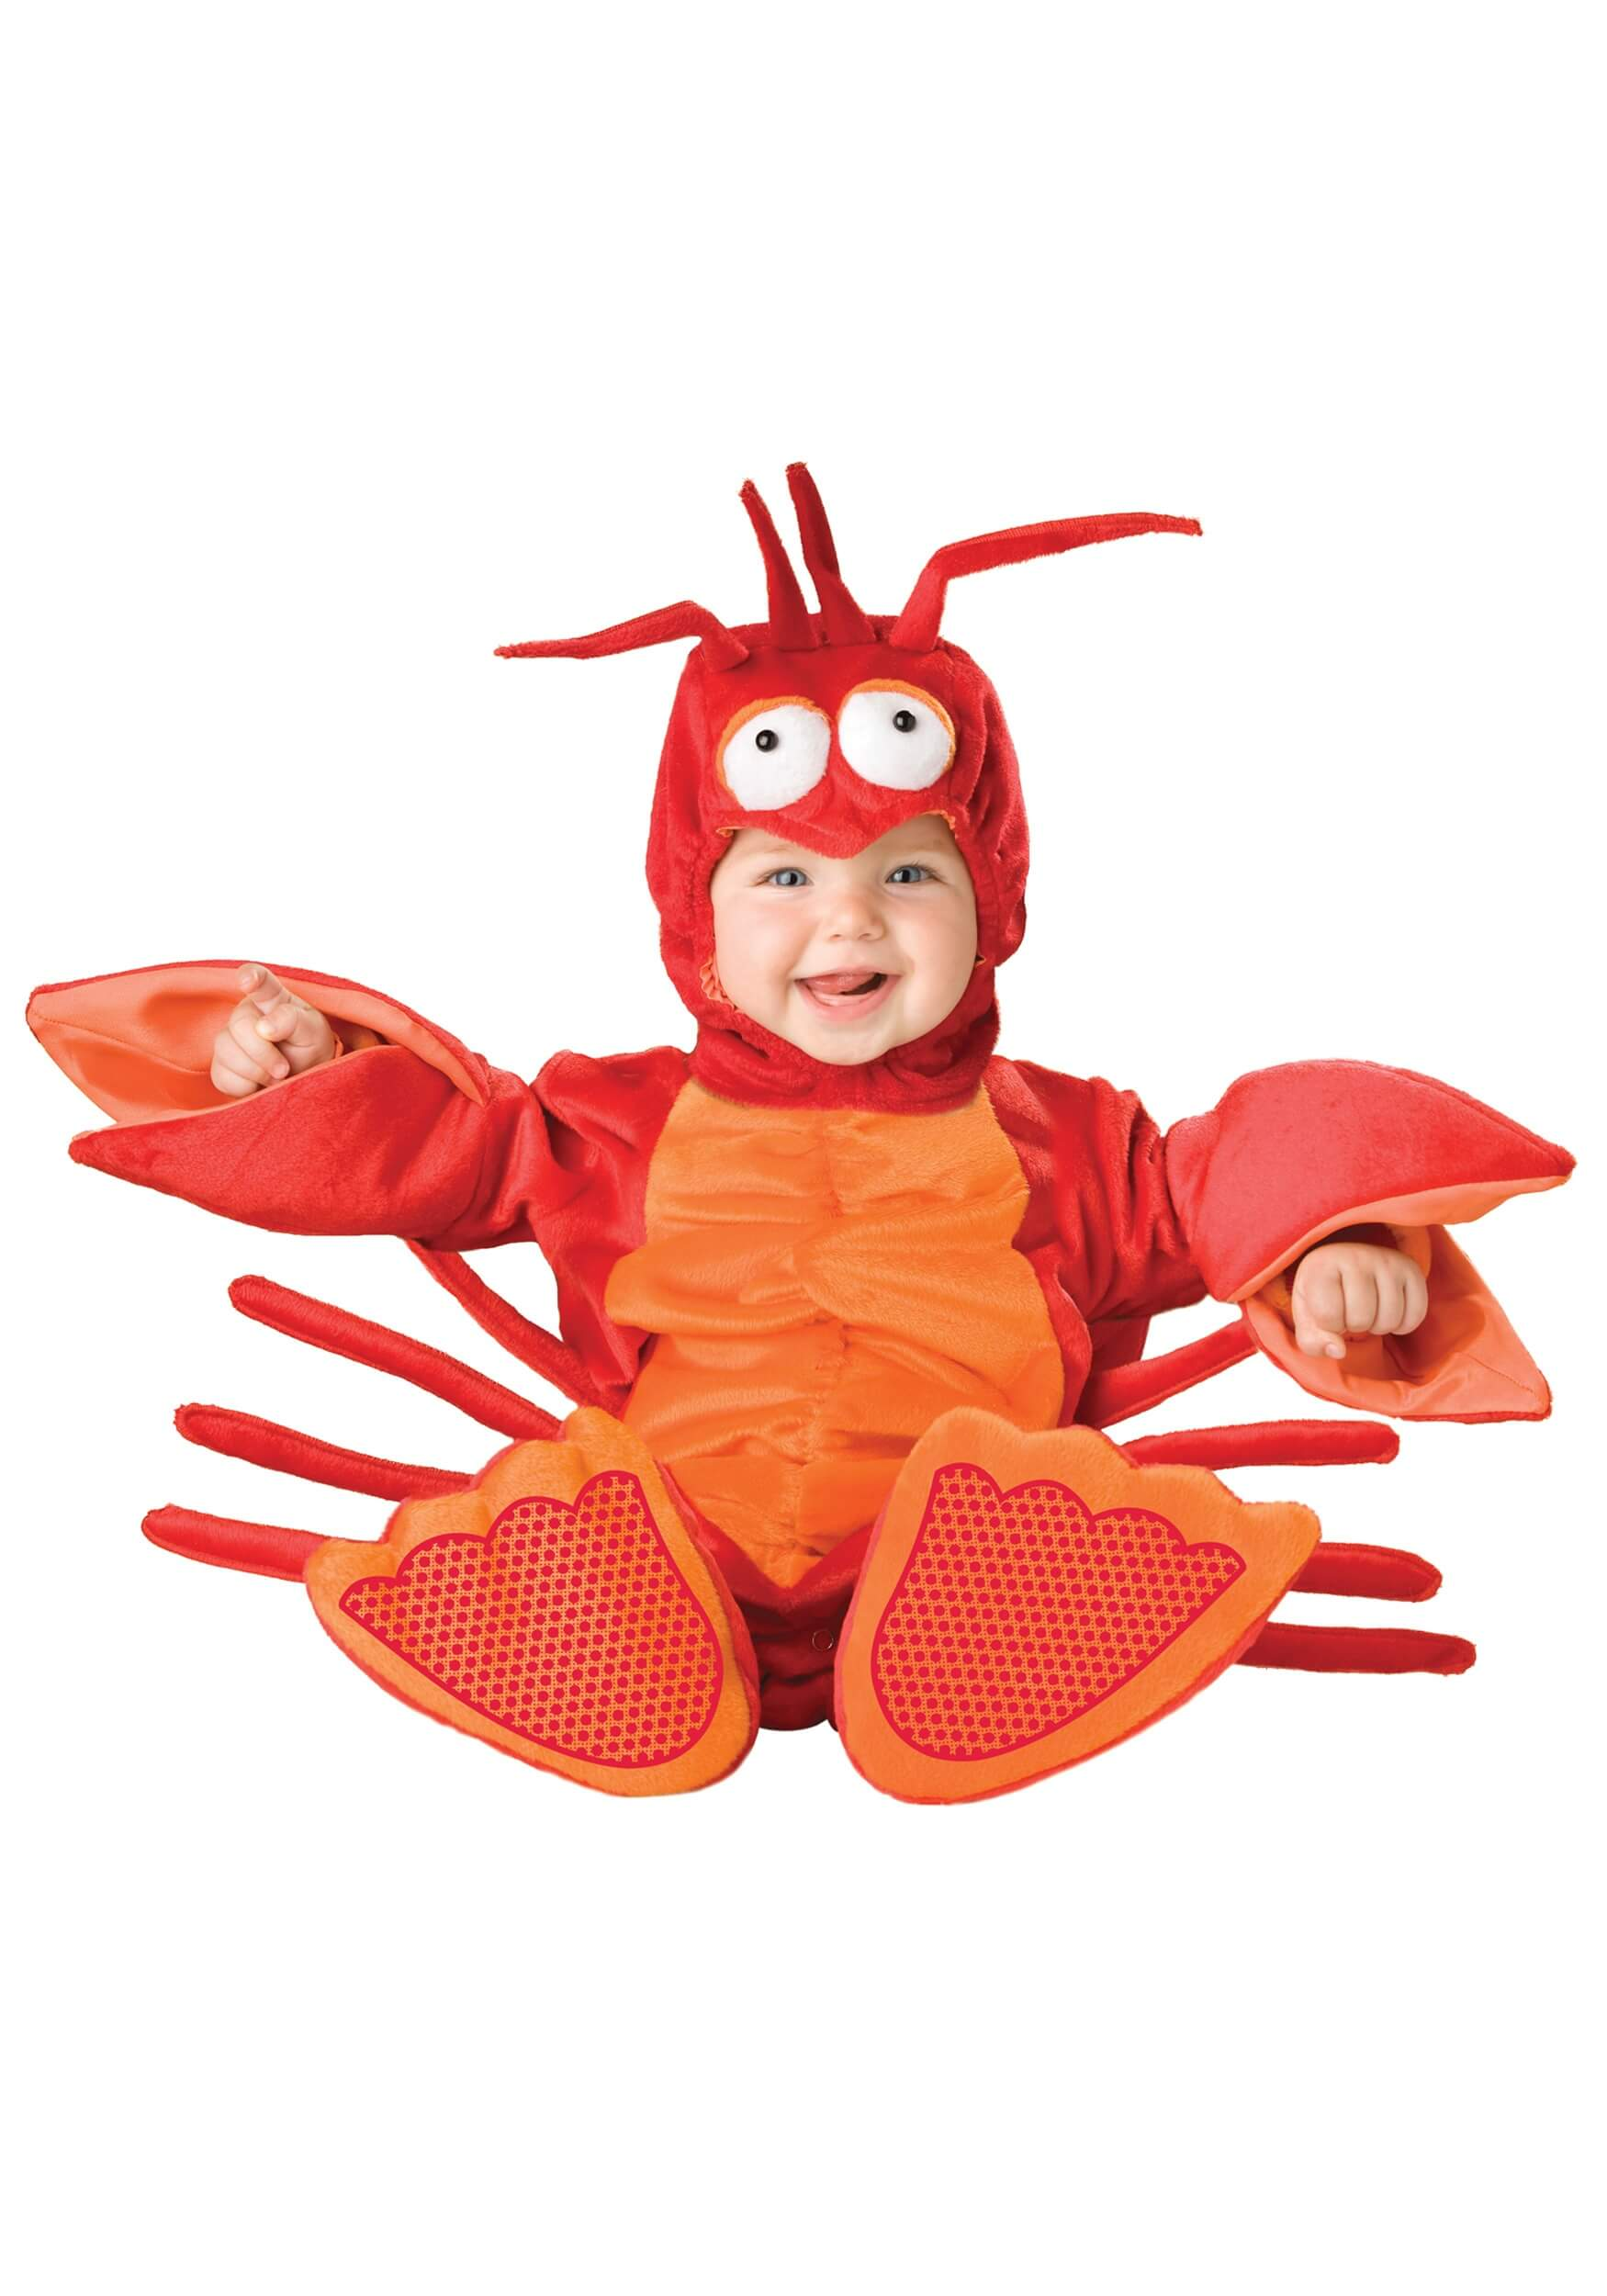 30 Halloween Costumes For Babies/Infants